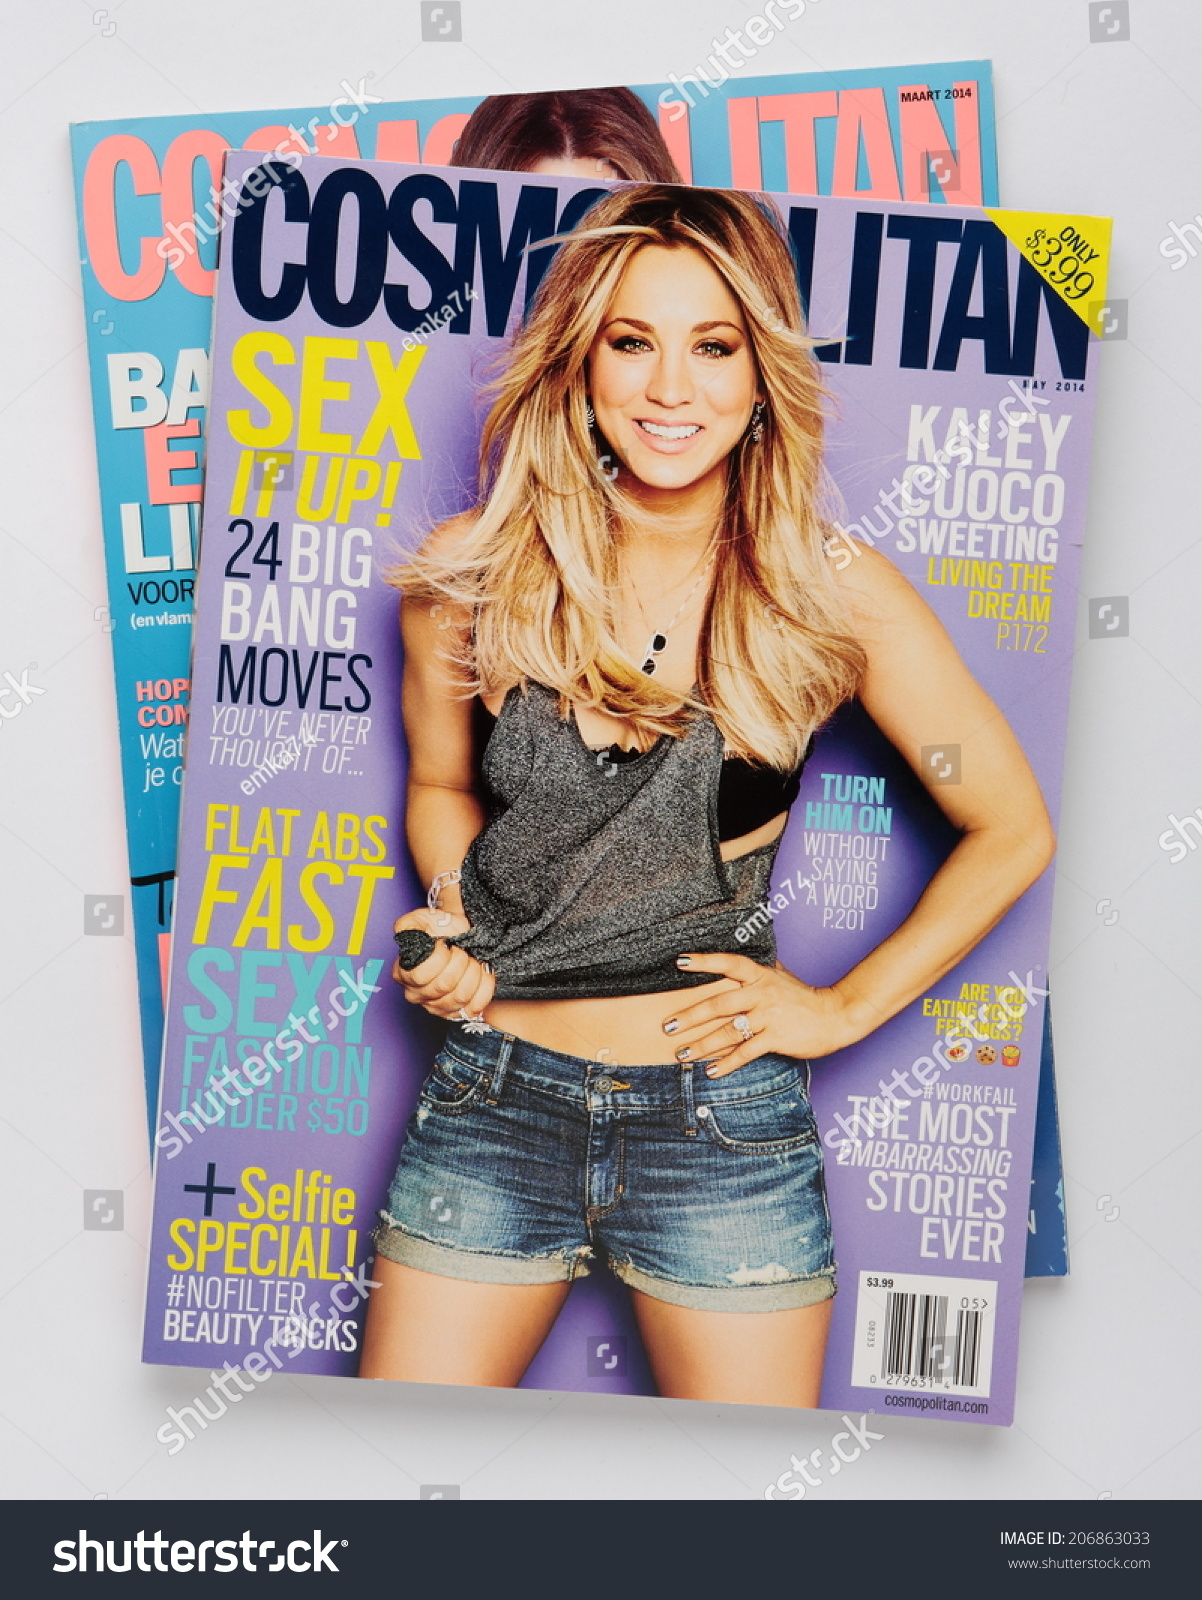 Kaley cuoco on walking down the aisle the second time cosmo.